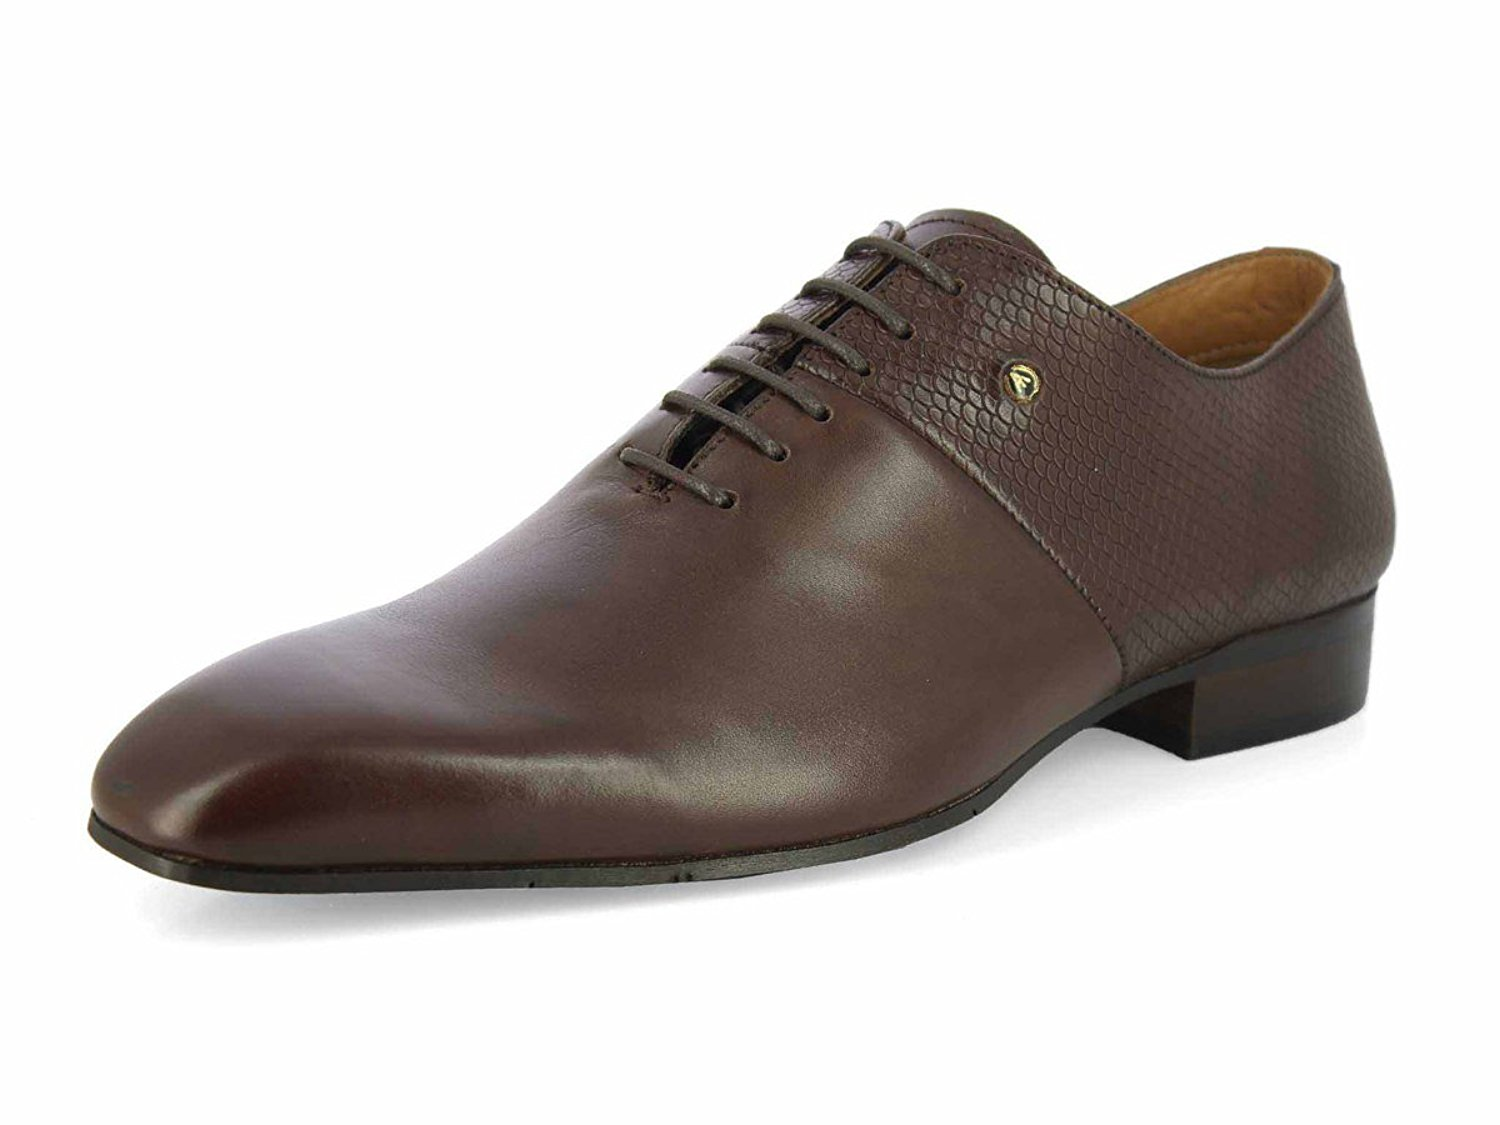 e9130c0b899f Get Quotations · ALBERTO TORRESI Leather Adriano Brown Formal Shoes for Men